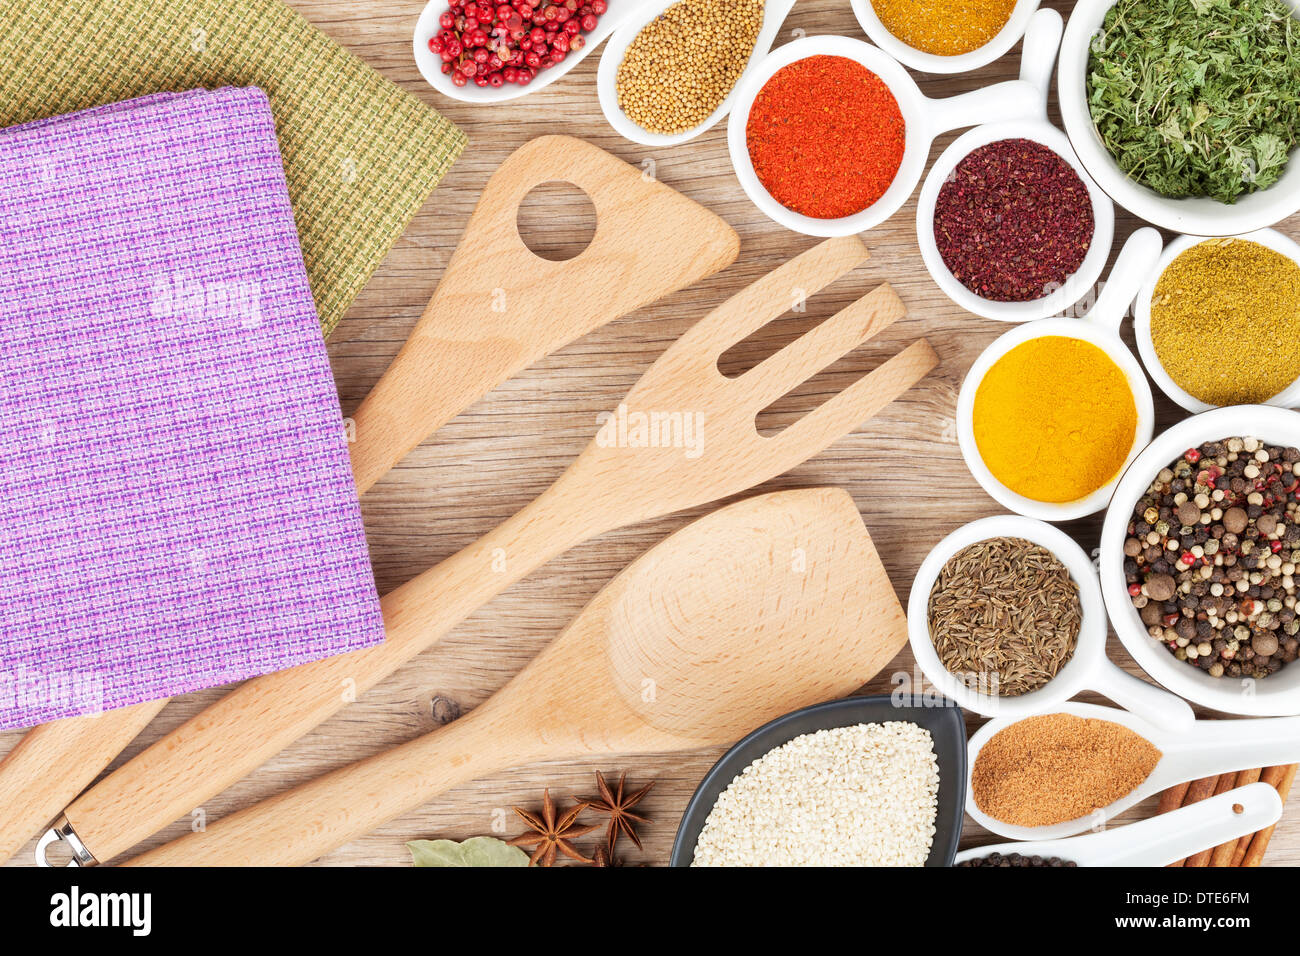 Various spices selection and kitchen utensils on wooden table - Stock Image